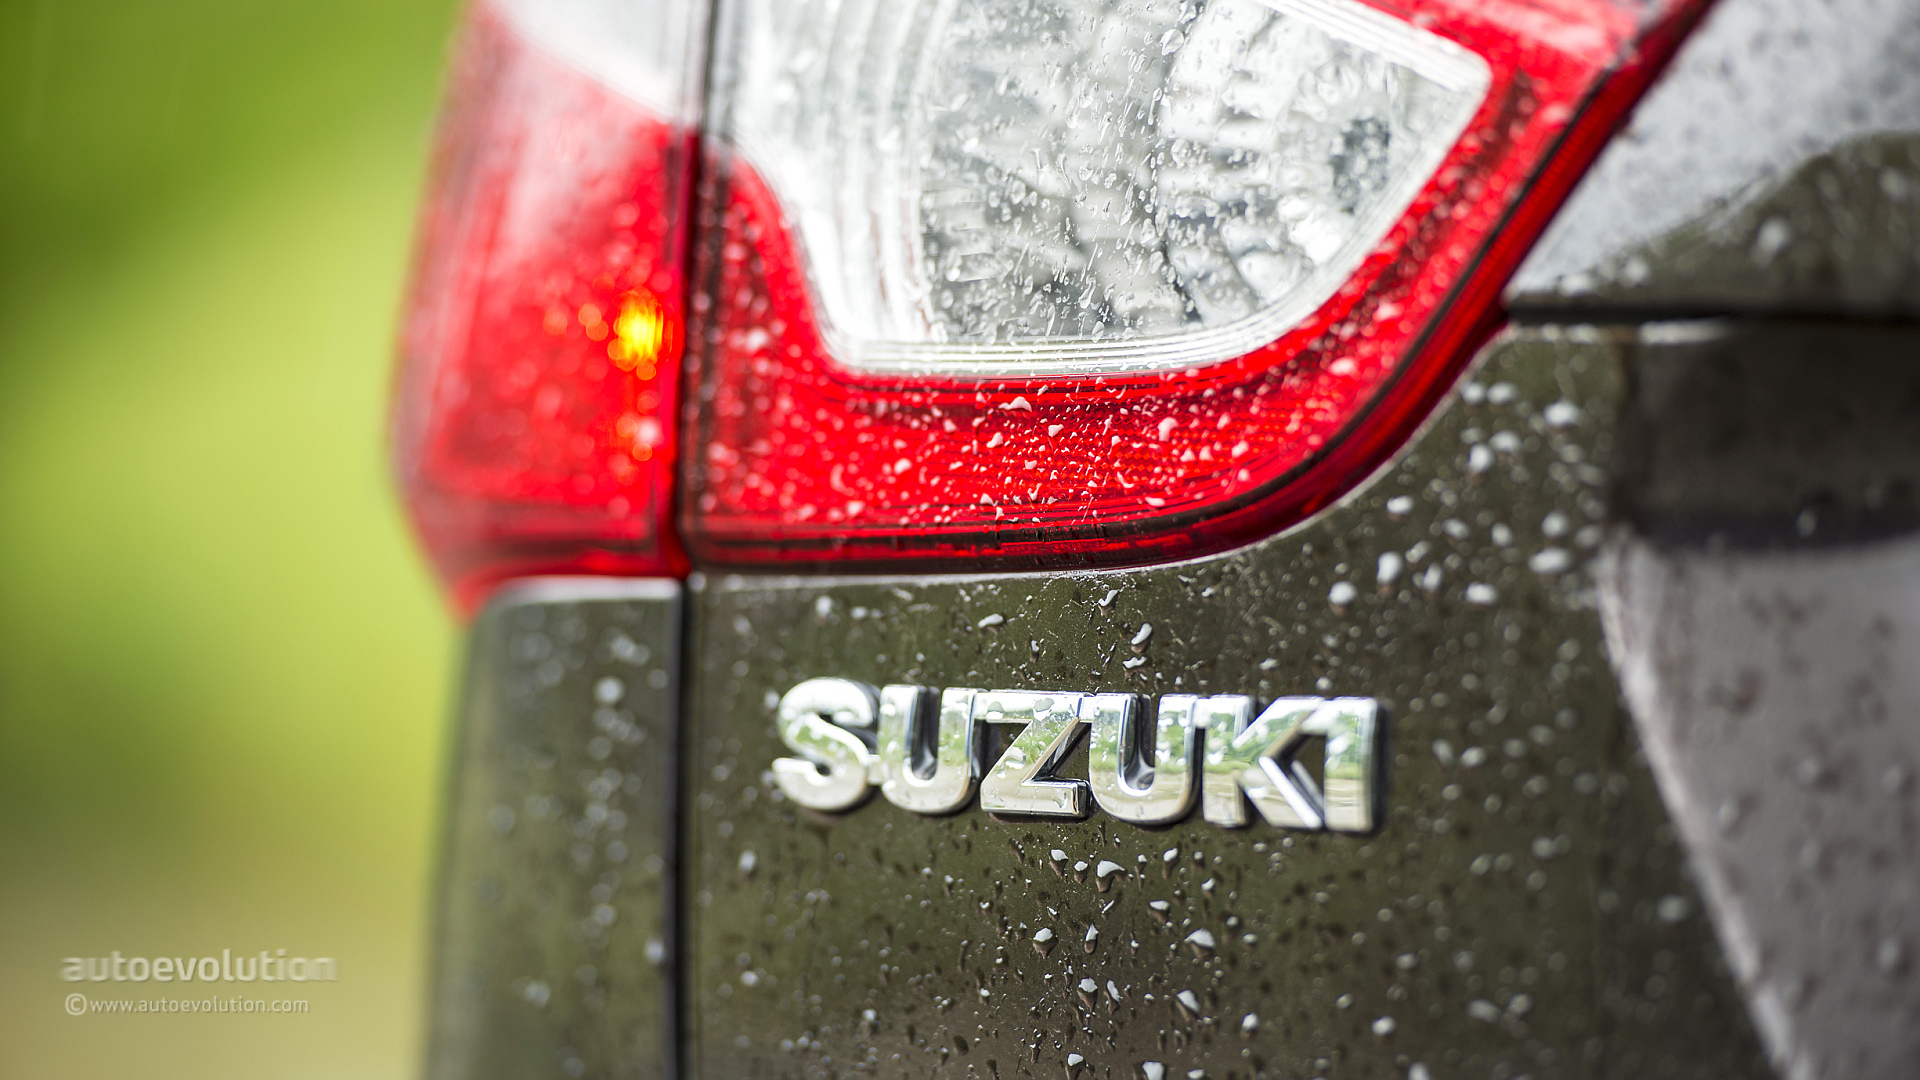 Suzuki Sx4 S Cross Hd Wallpapers Autoevolution